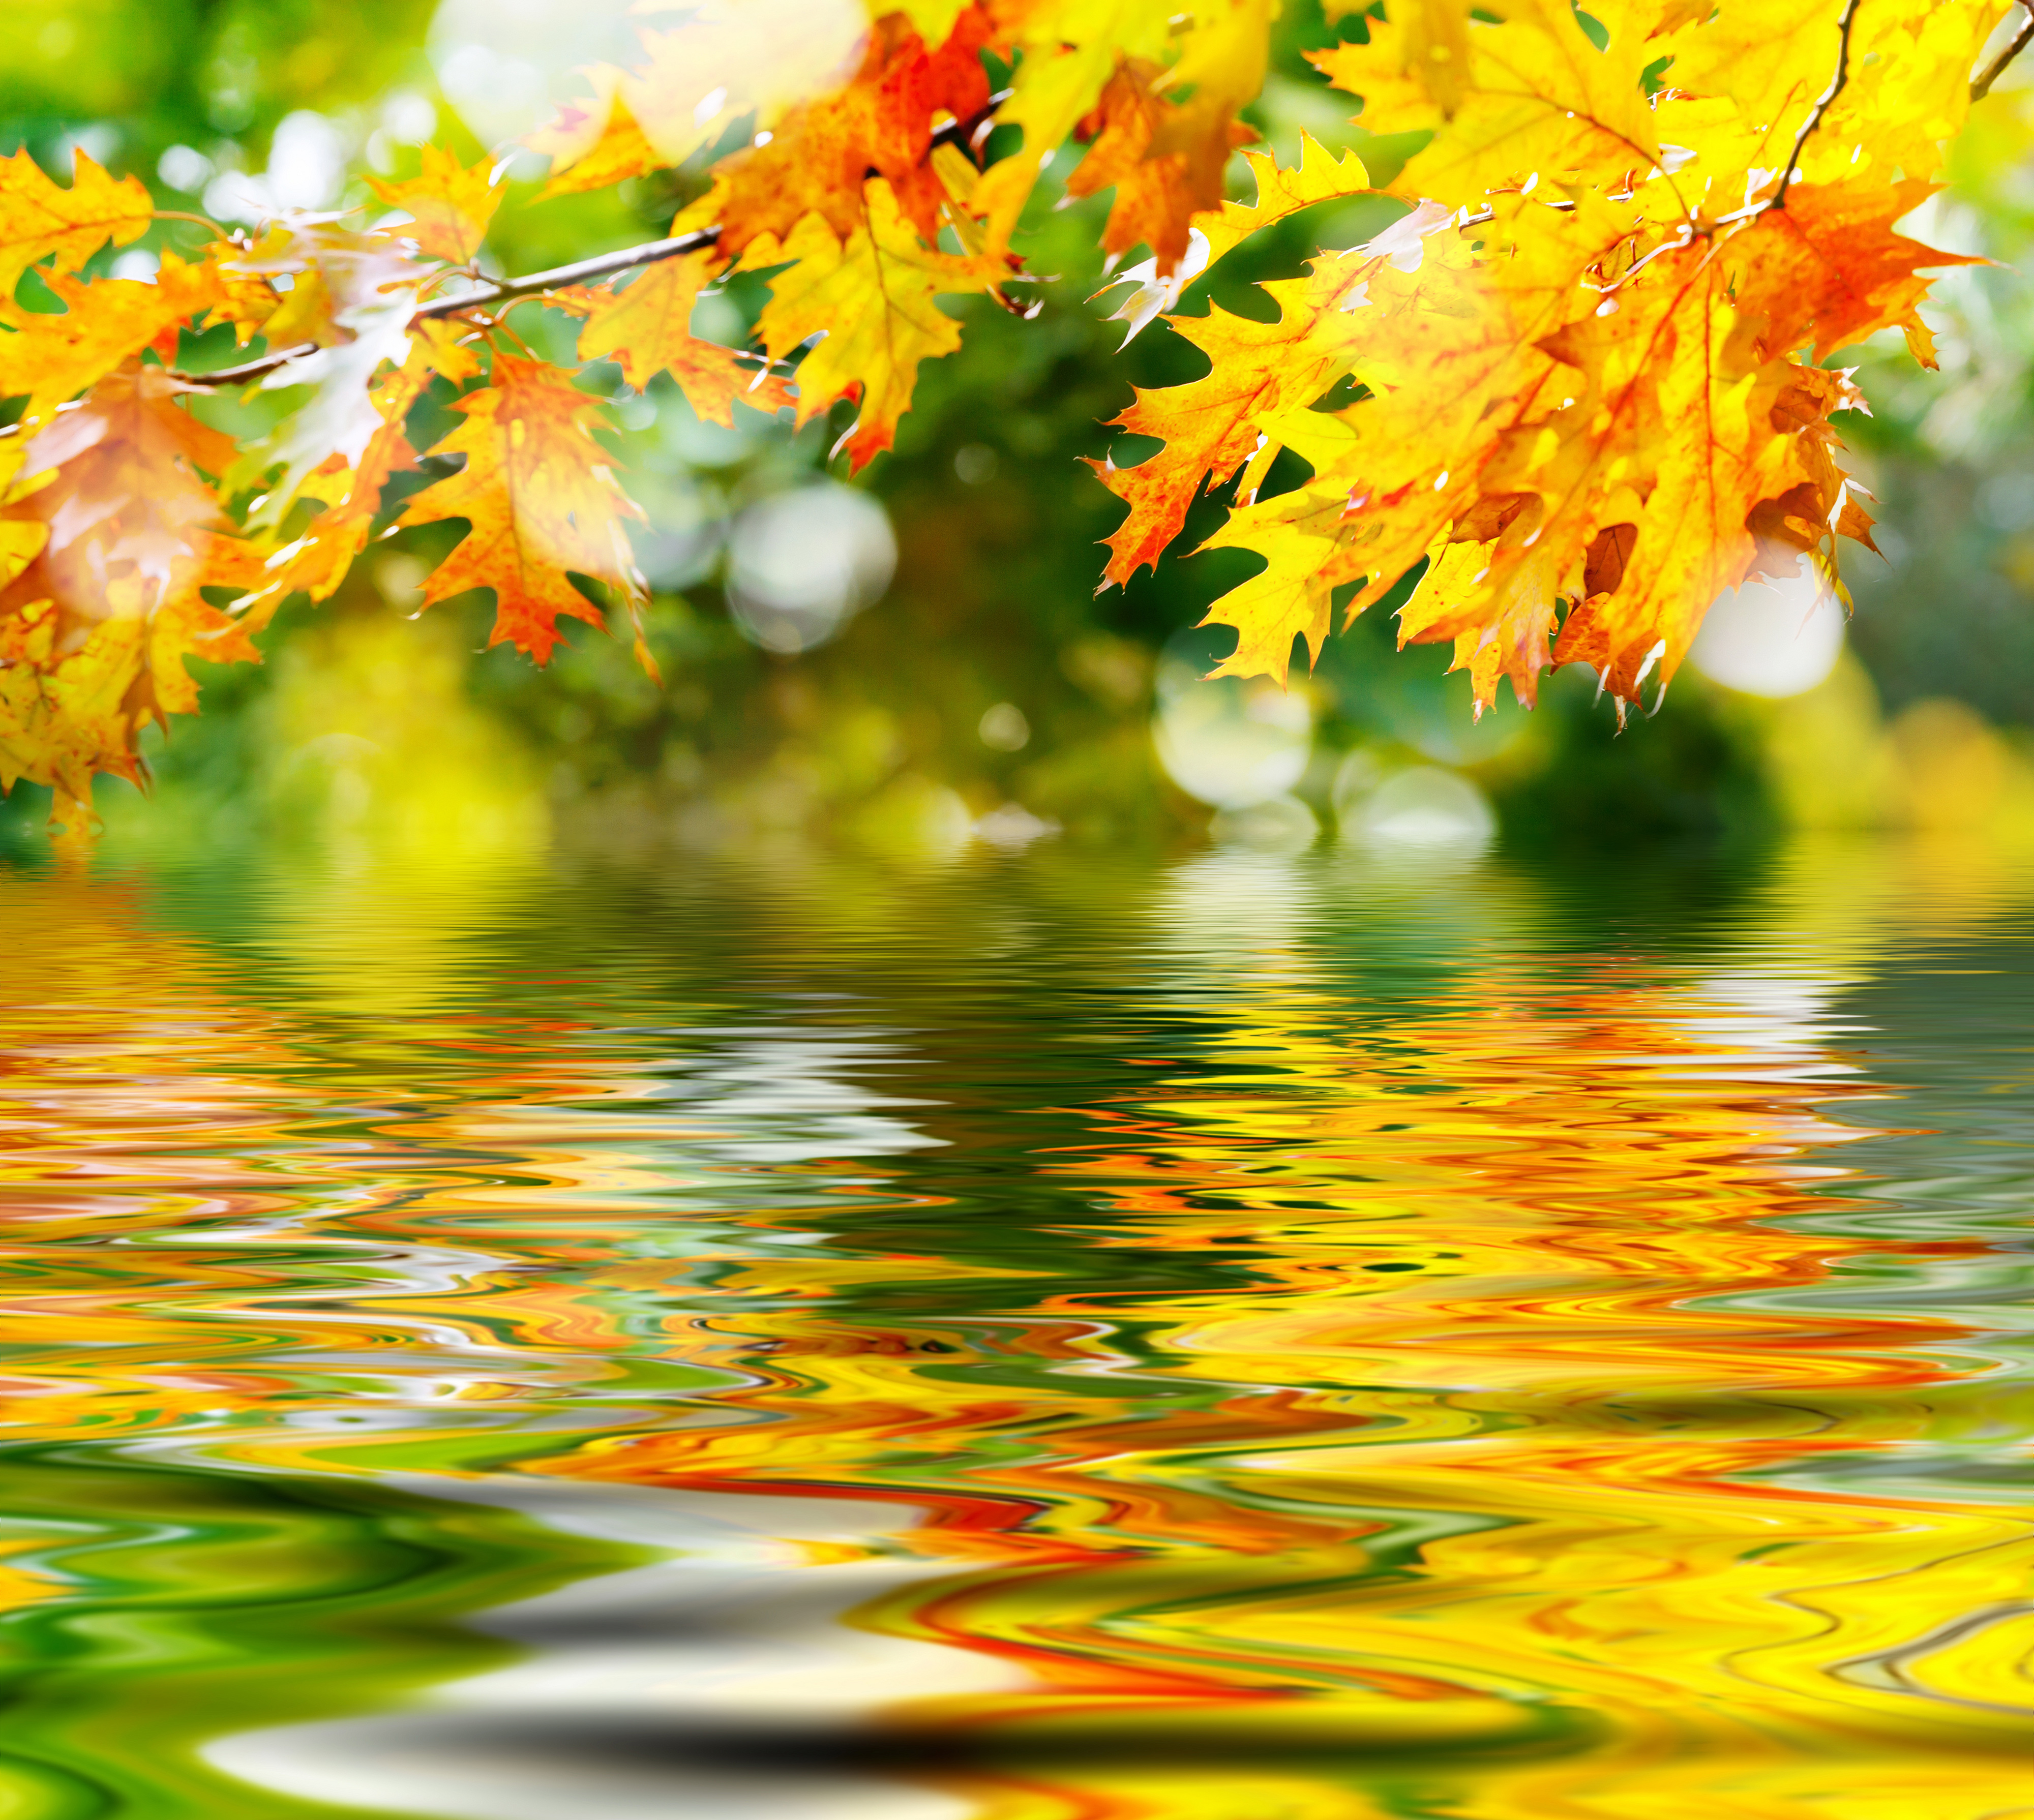 Autumn Leaves and Water Background | Gallery Yopriceville - High ...